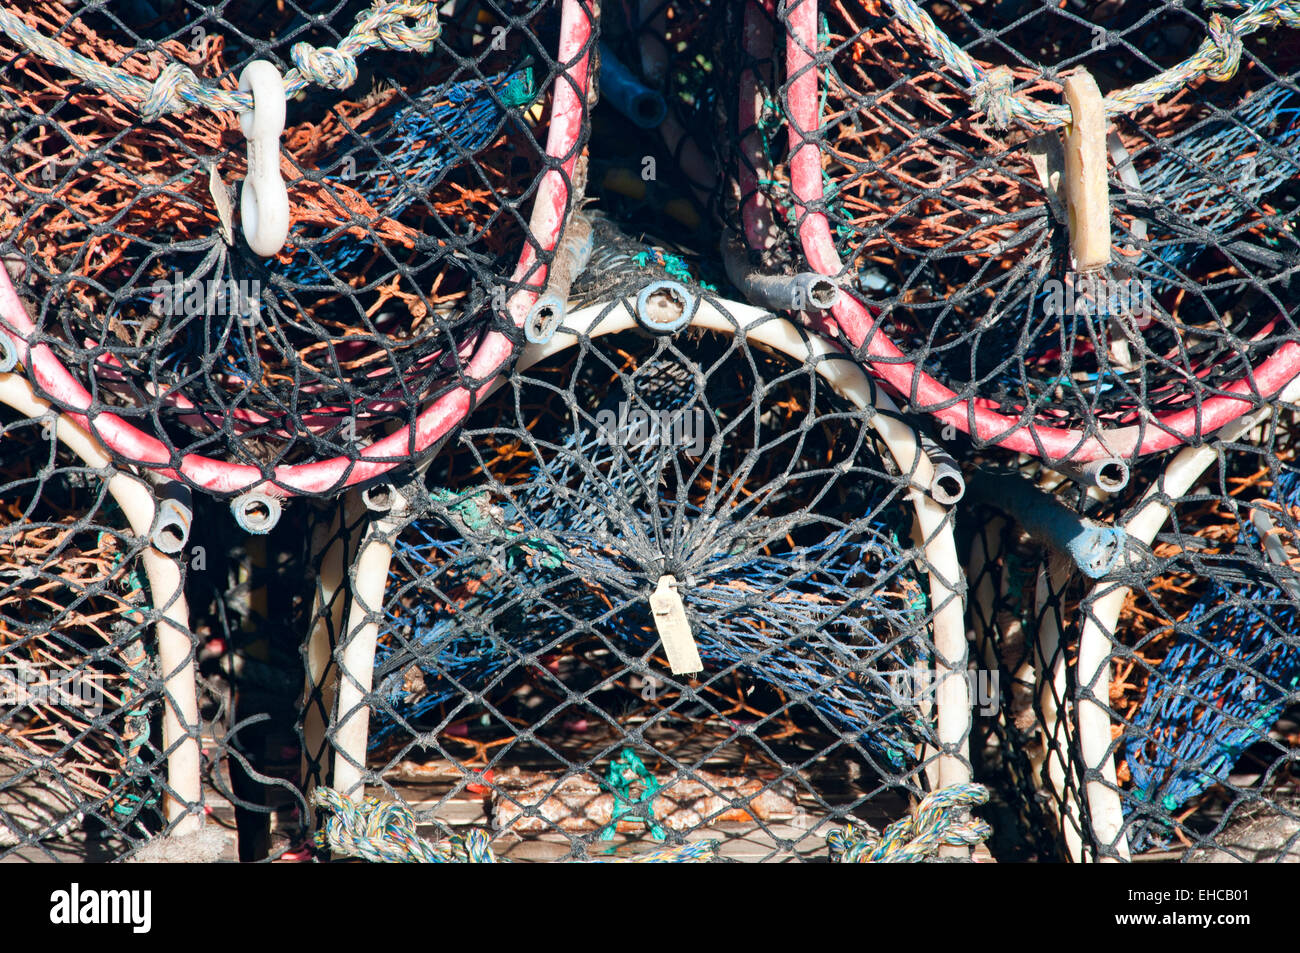 Detail of a Row of Lobster Pots, Lindisfarne, Northumberland, England, - Stock Image